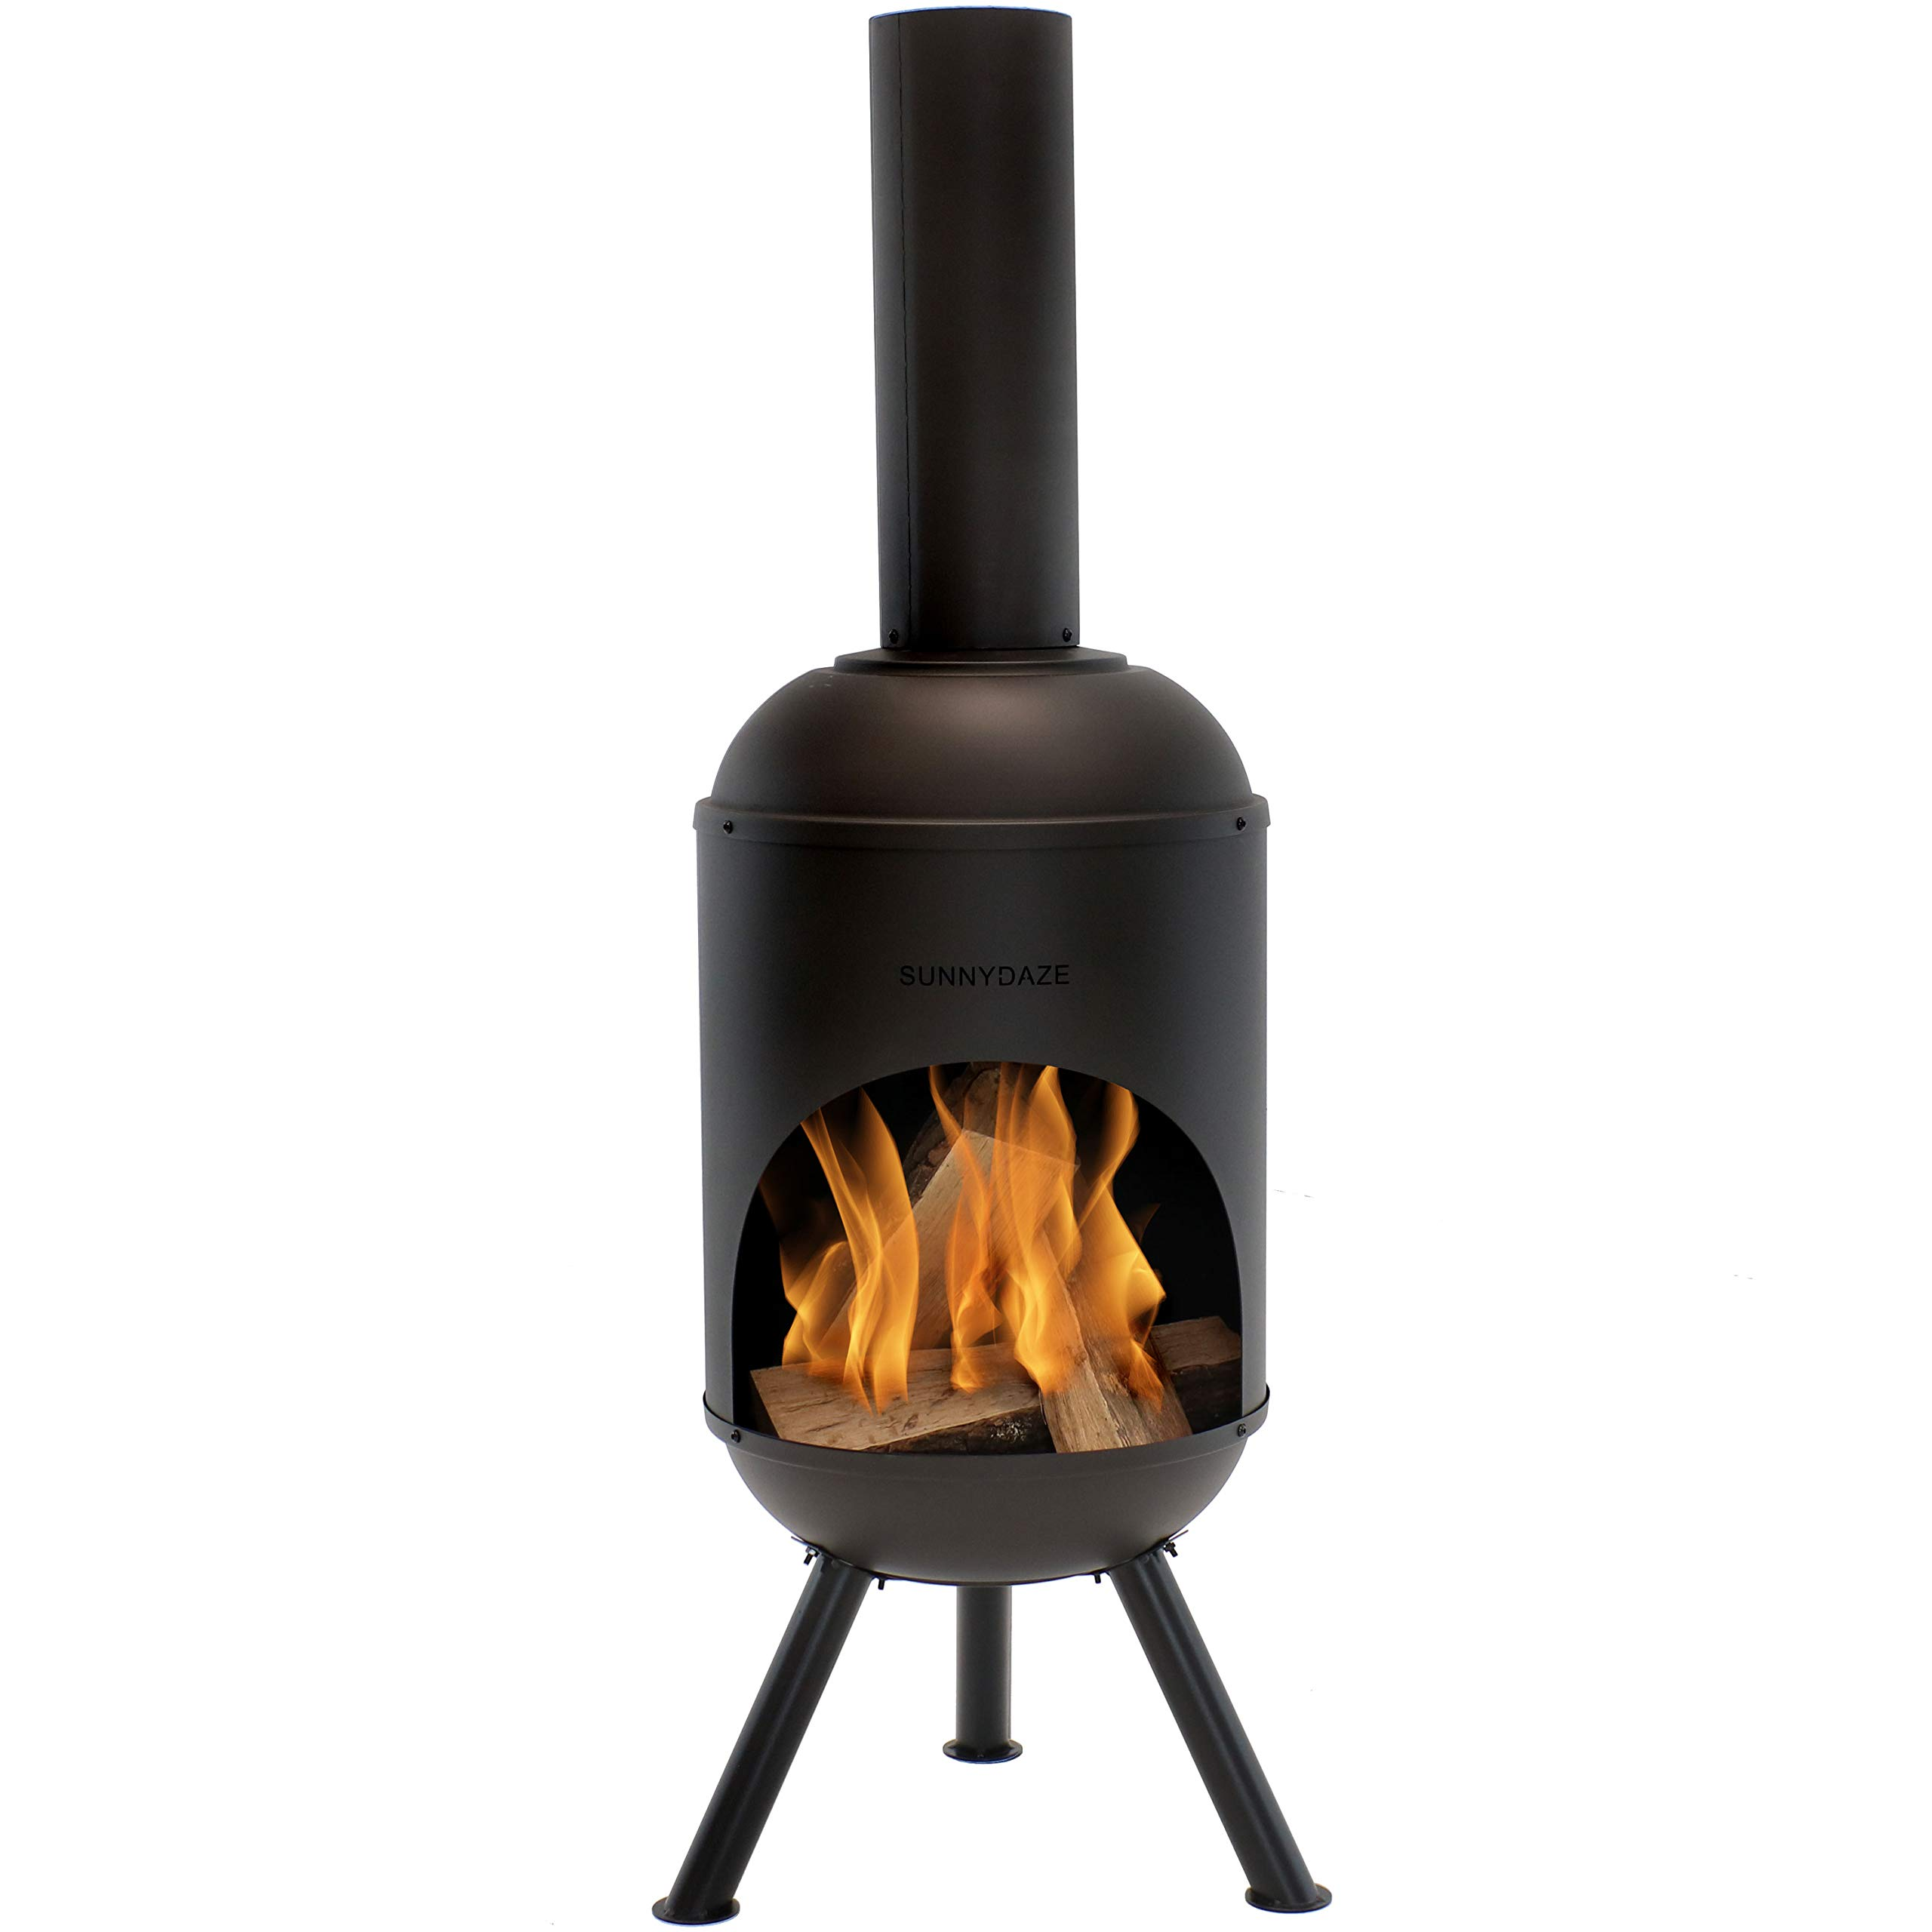 Sunnydaze Modern Chiminea - Steel Outdoor Wood-Burning Fire Pit - Large 5-Foot Black Fireplace - Durable Wood Grate - Quick & Easy Assembly - Perfect for Patio, Deck or Backyard Use by Sunnydaze Decor